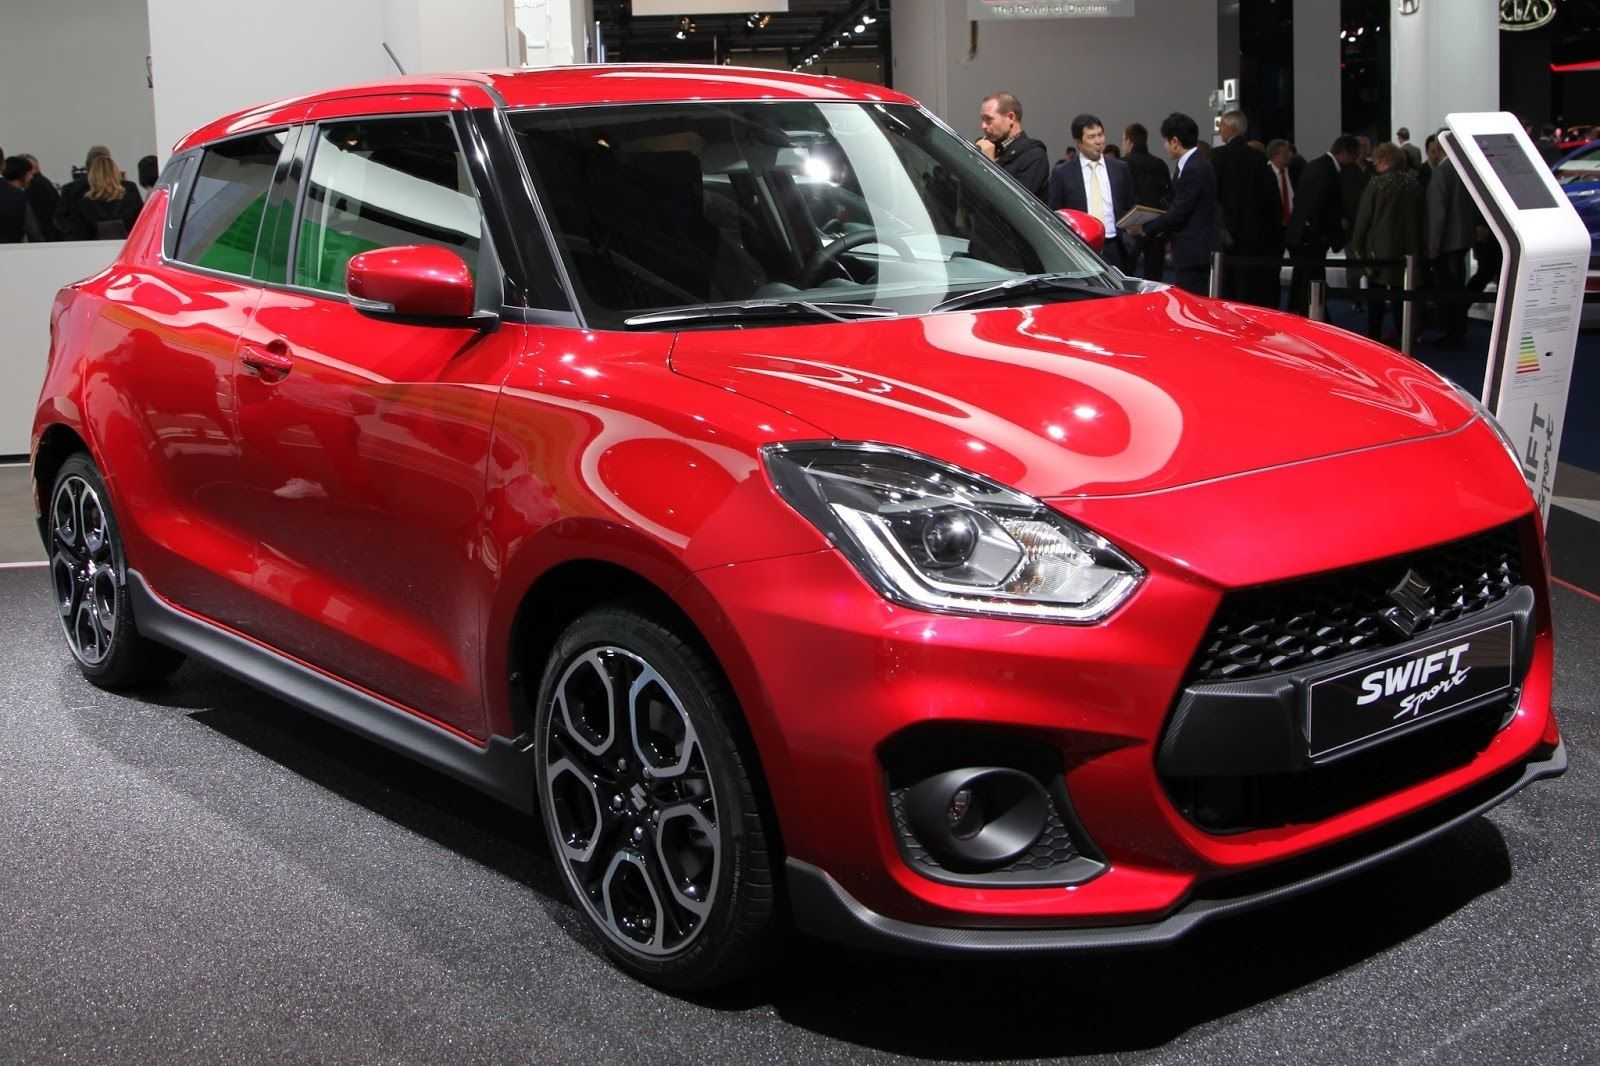 Suzuki Swift 2018 Release Date Price And Review Suzuki Swift Sport Suzuki Swift Maruti Suzuki Cars